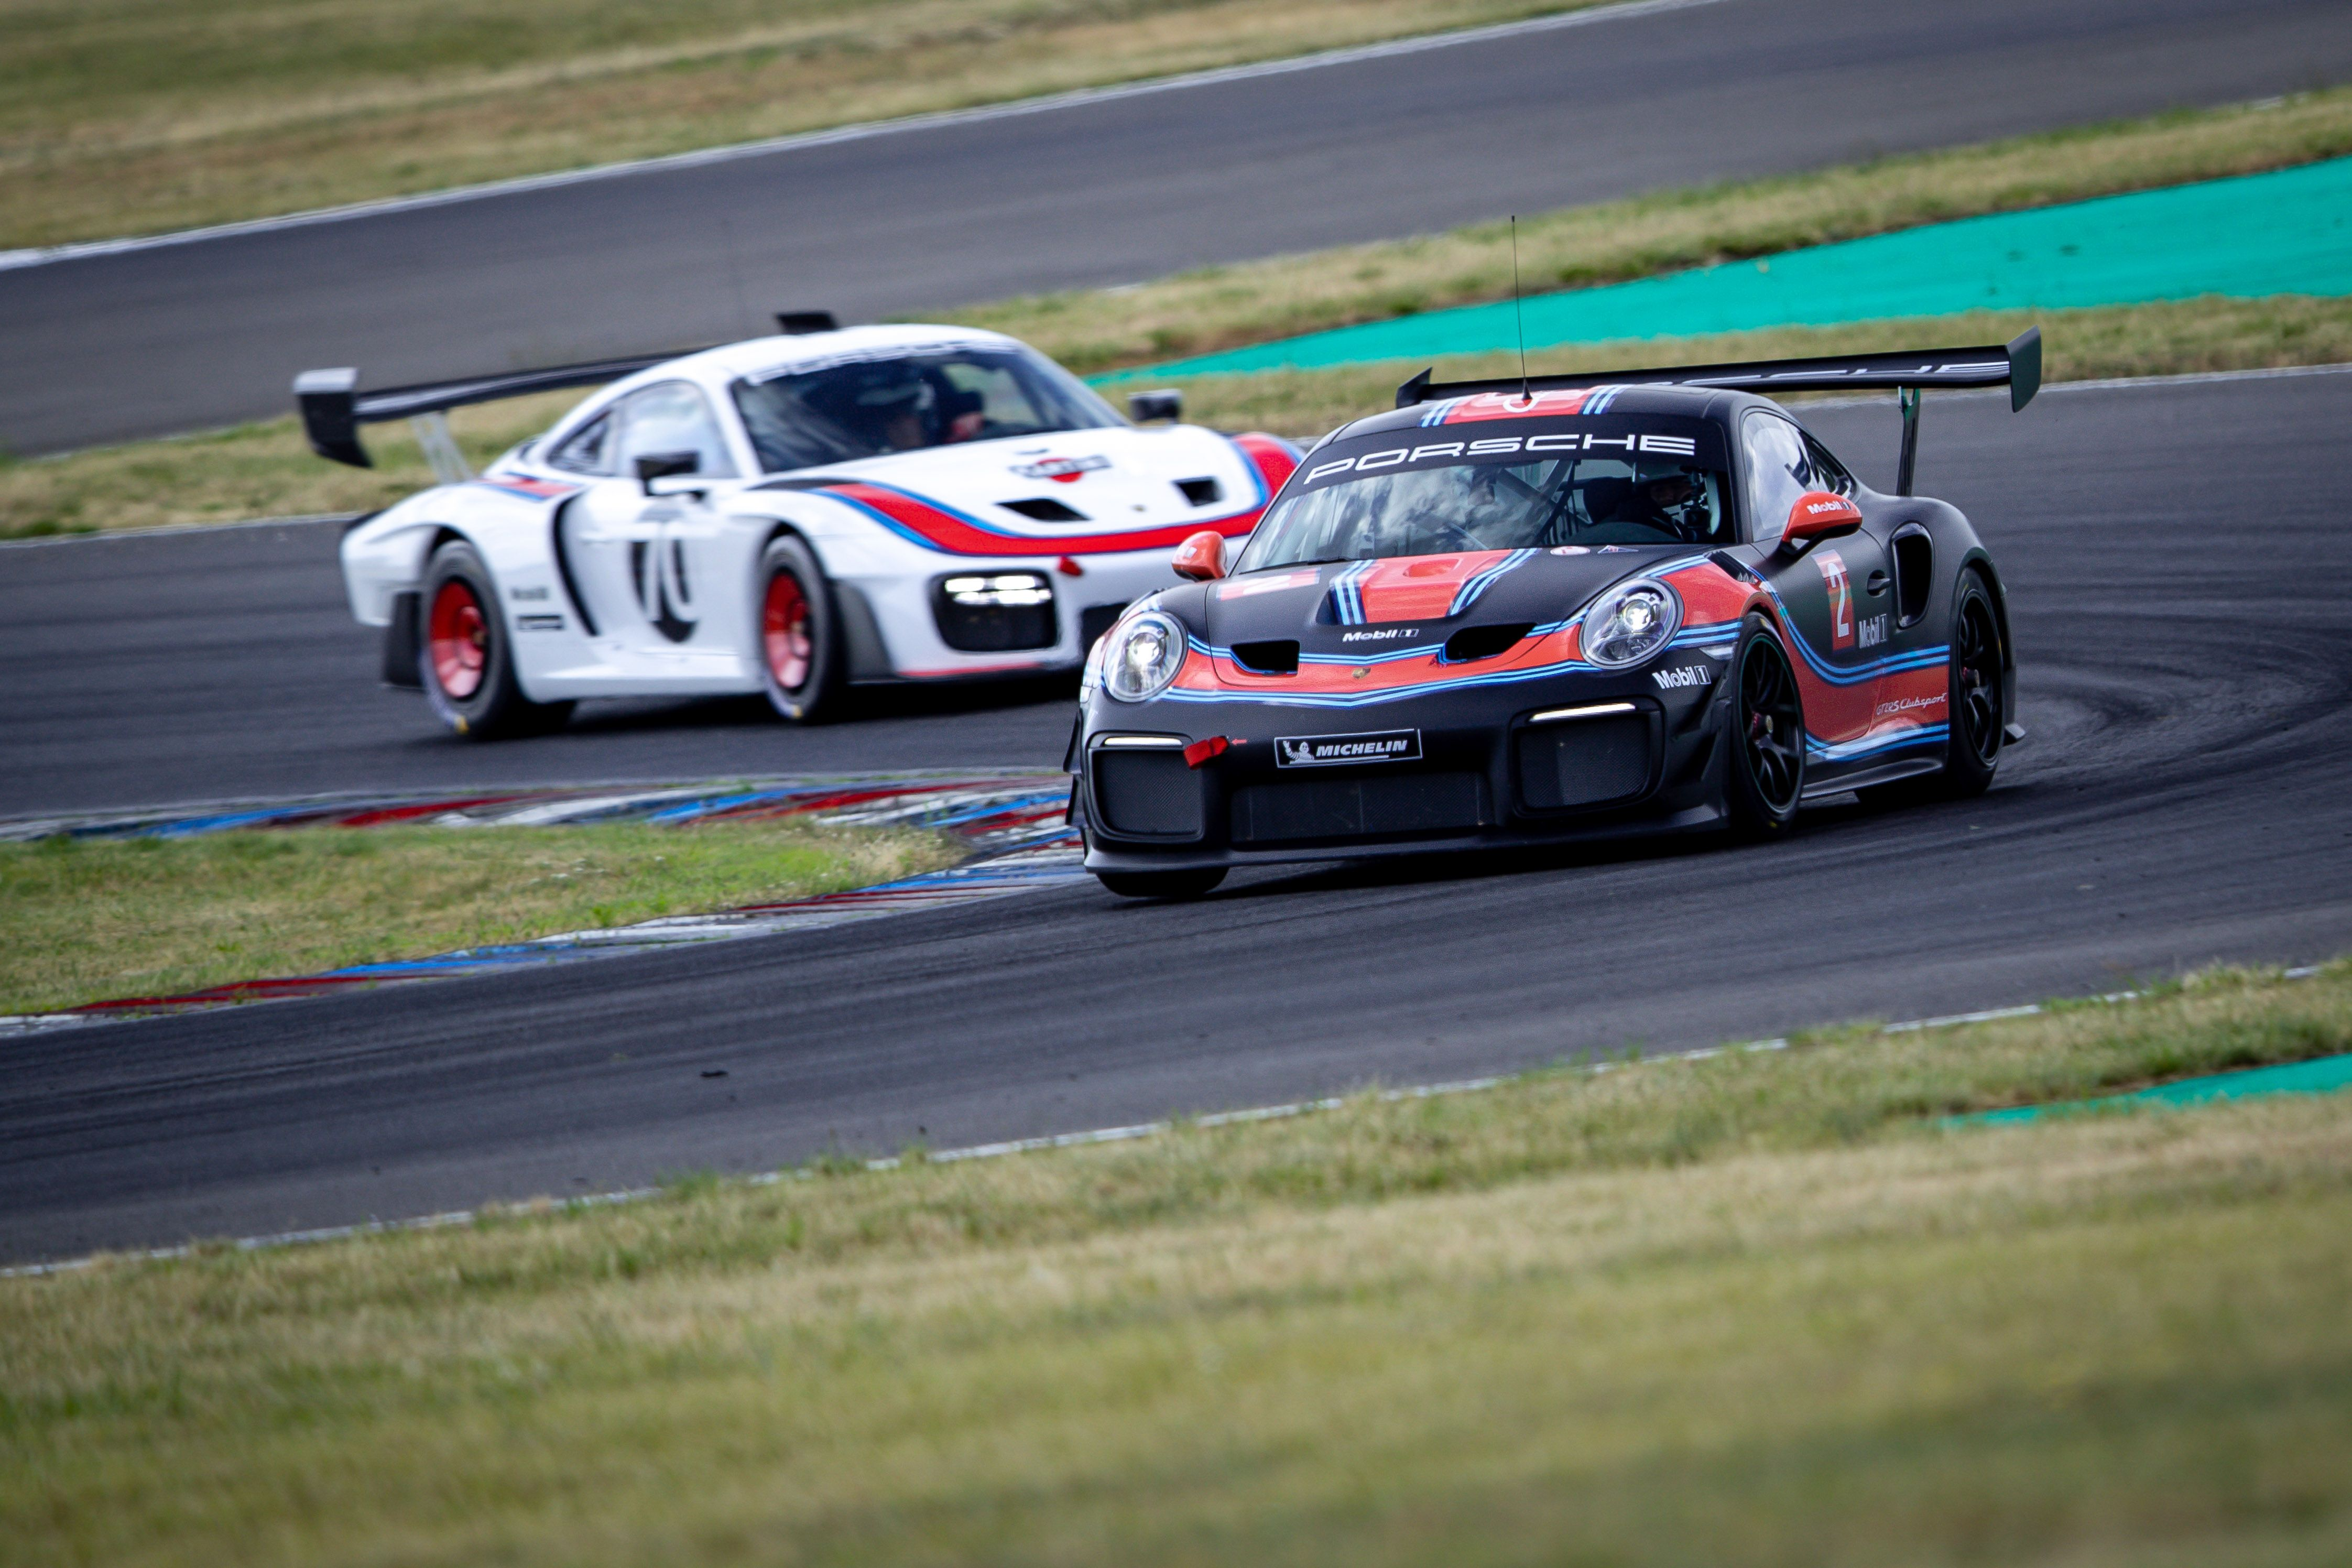 2019 Porsche 911 GT2 RS Clubsport and 935 Racers Grant Your